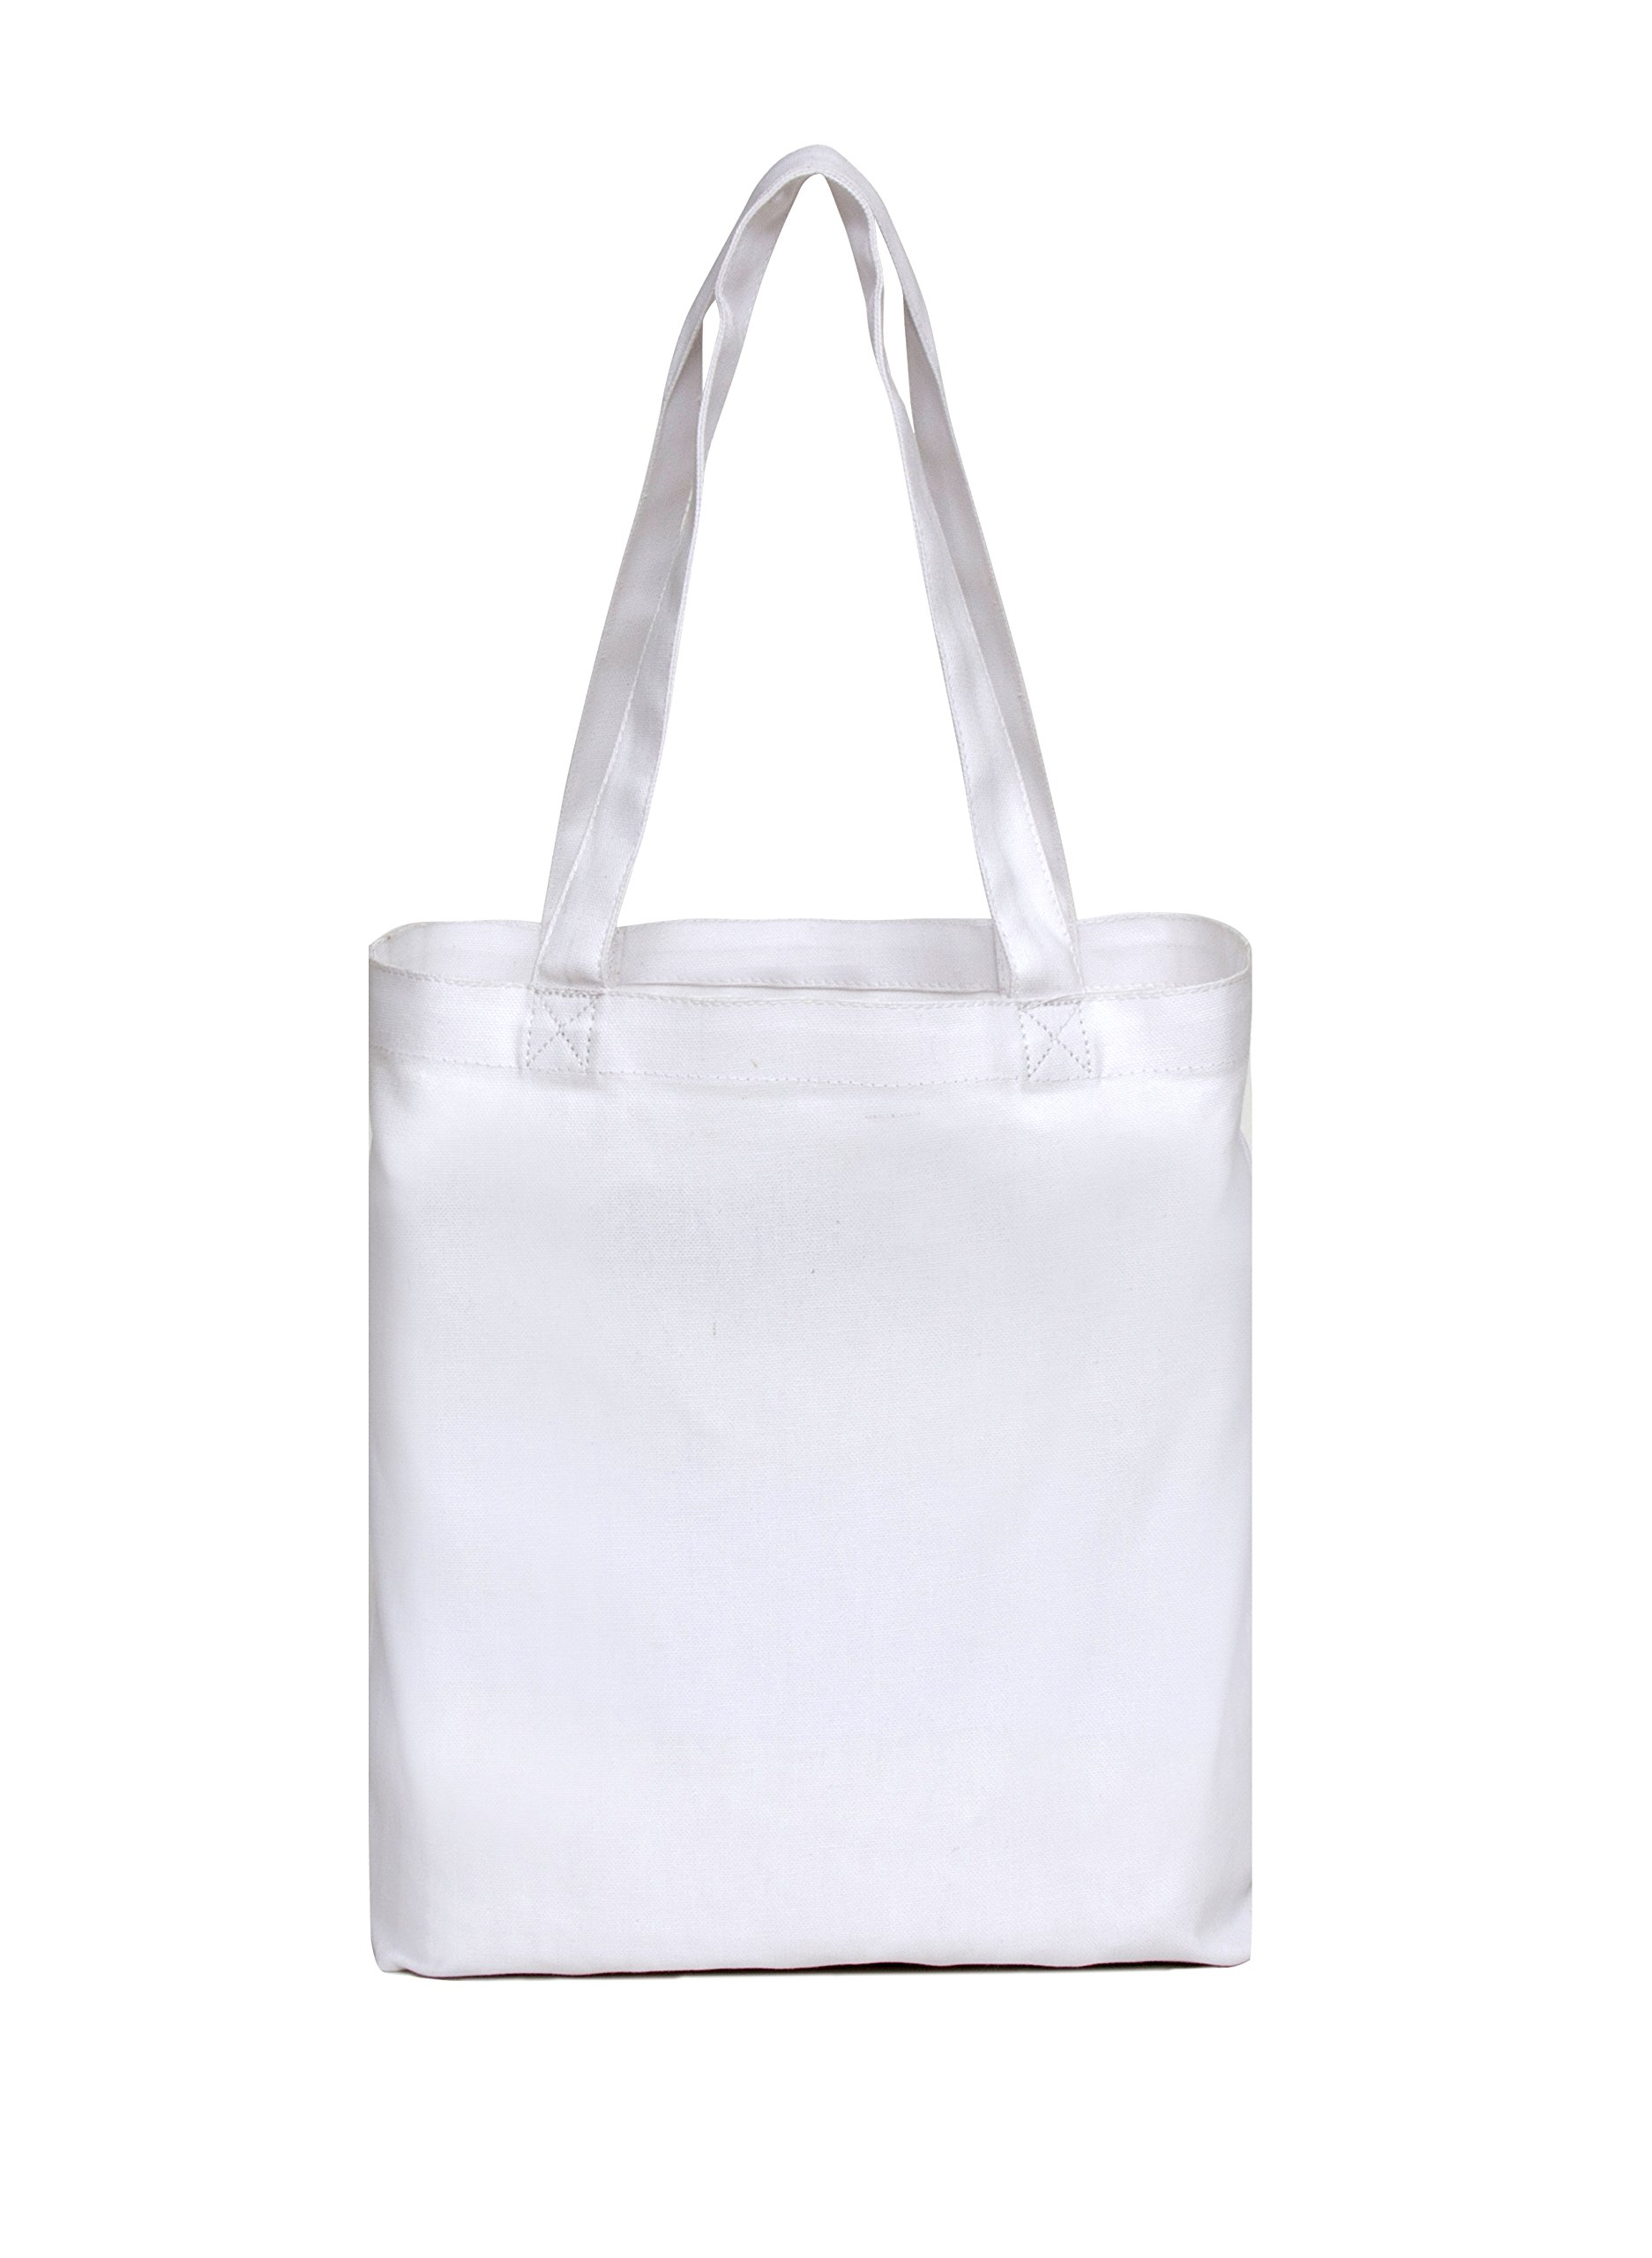 Medium White Tote Bag 14x13x3'', 100% Cotton Canvas - Pack of 12